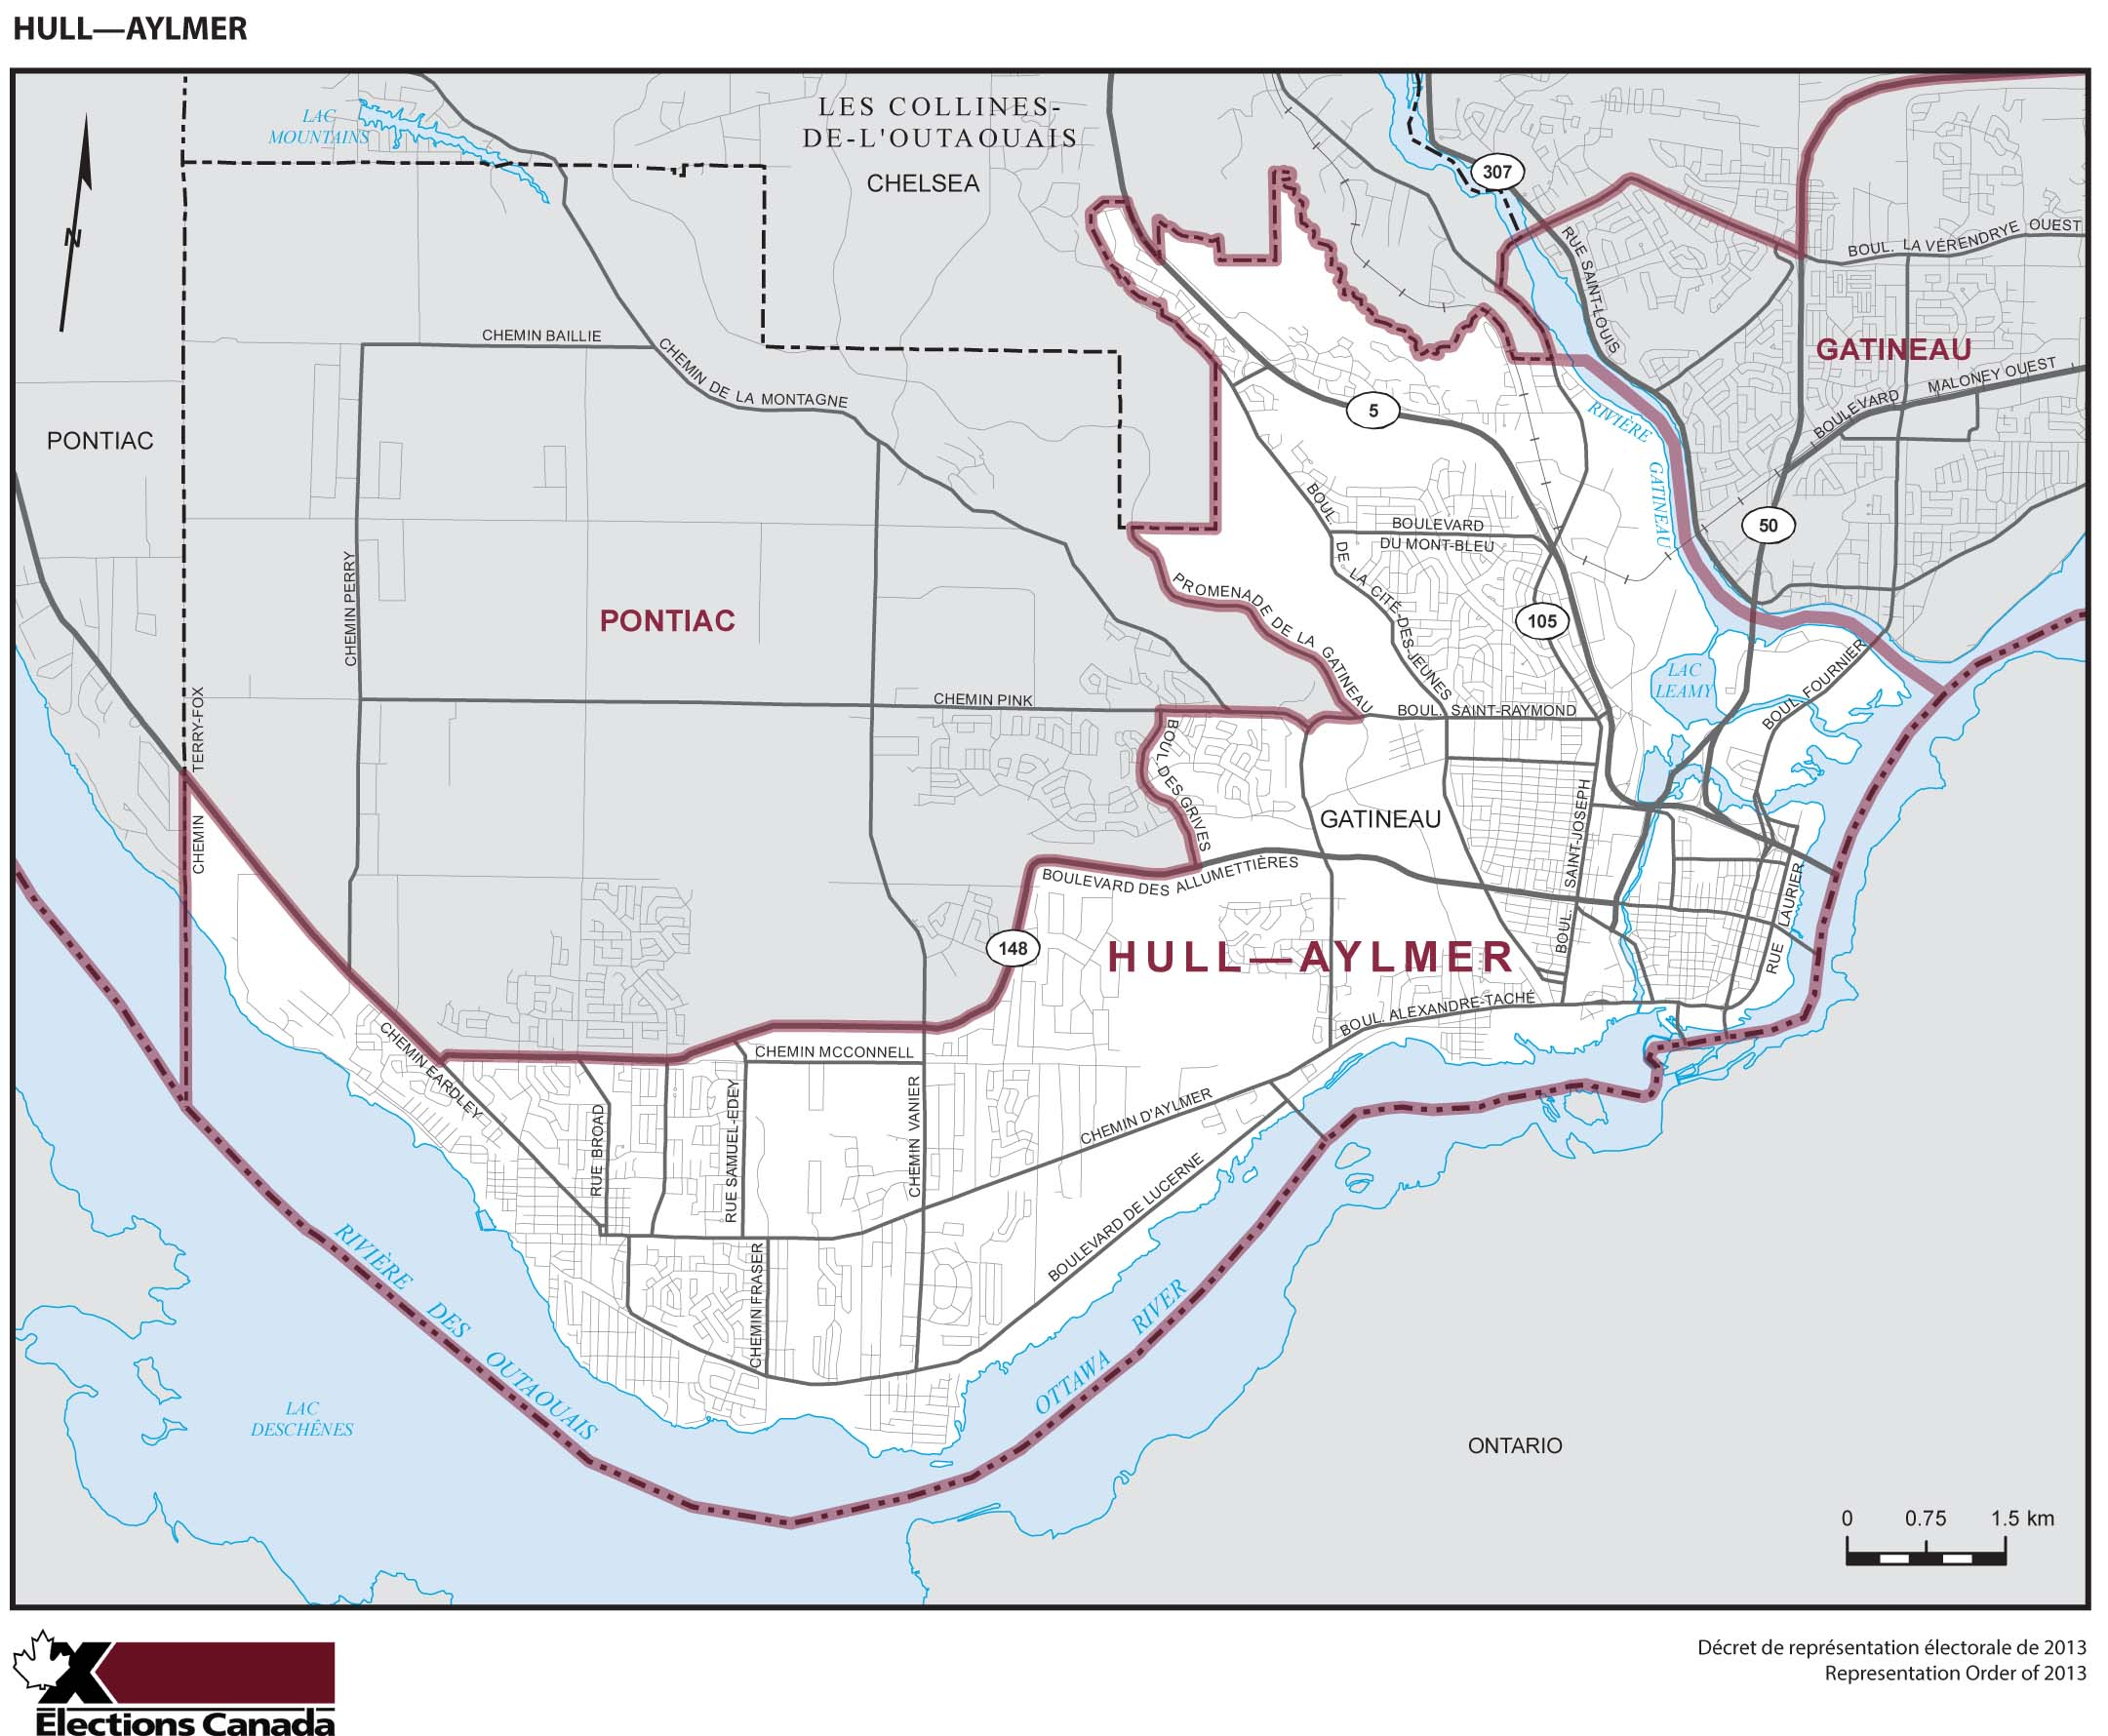 Map: Hull--Aylmer, Federal electoral district, 2013 Representation Order (in white), Quebec